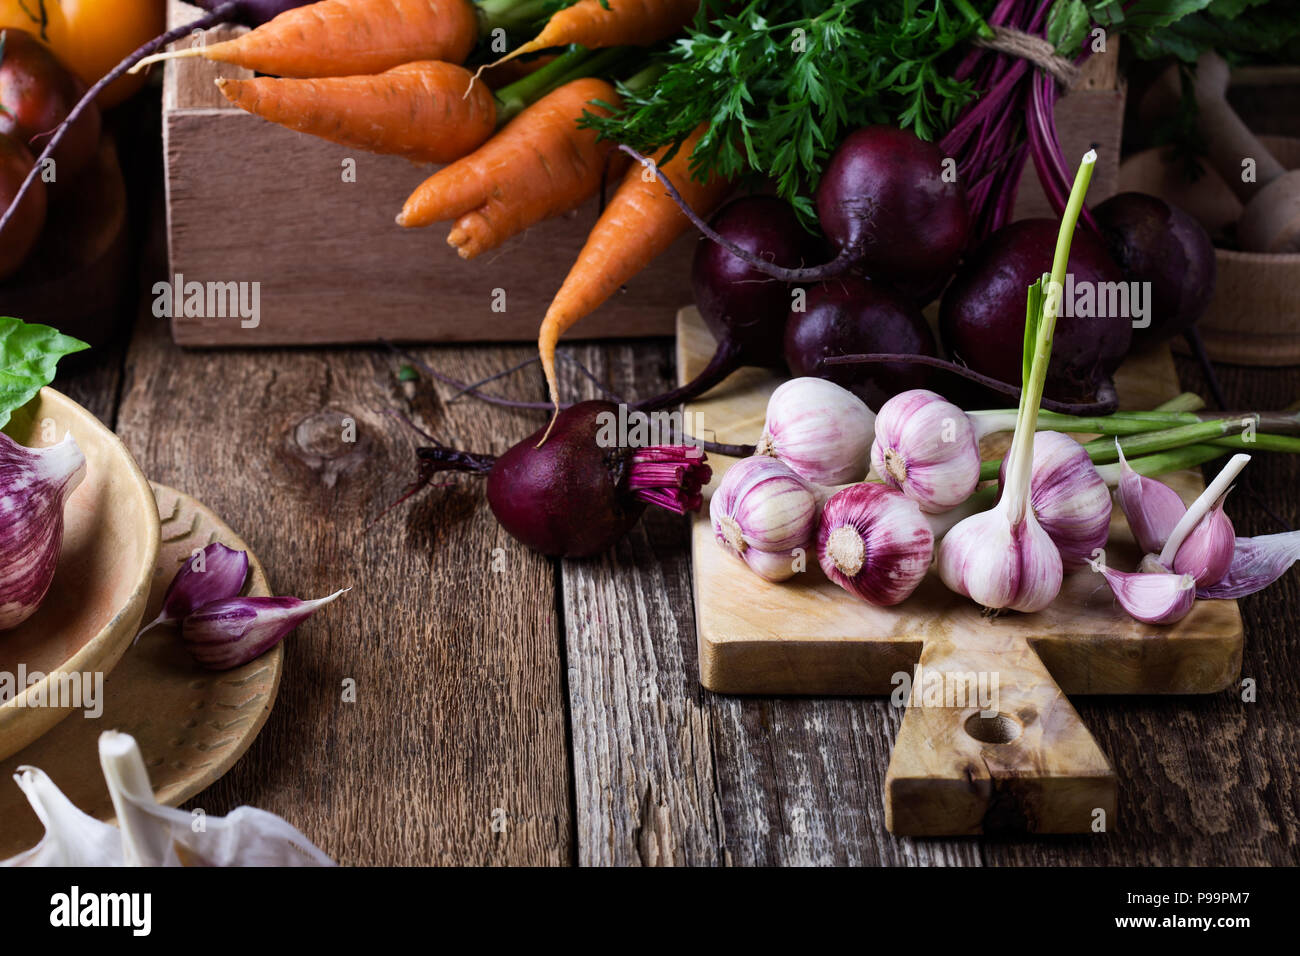 Fresh organic homegrown colofrul vegetables on wooden rustic table, harvest still life - Stock Image